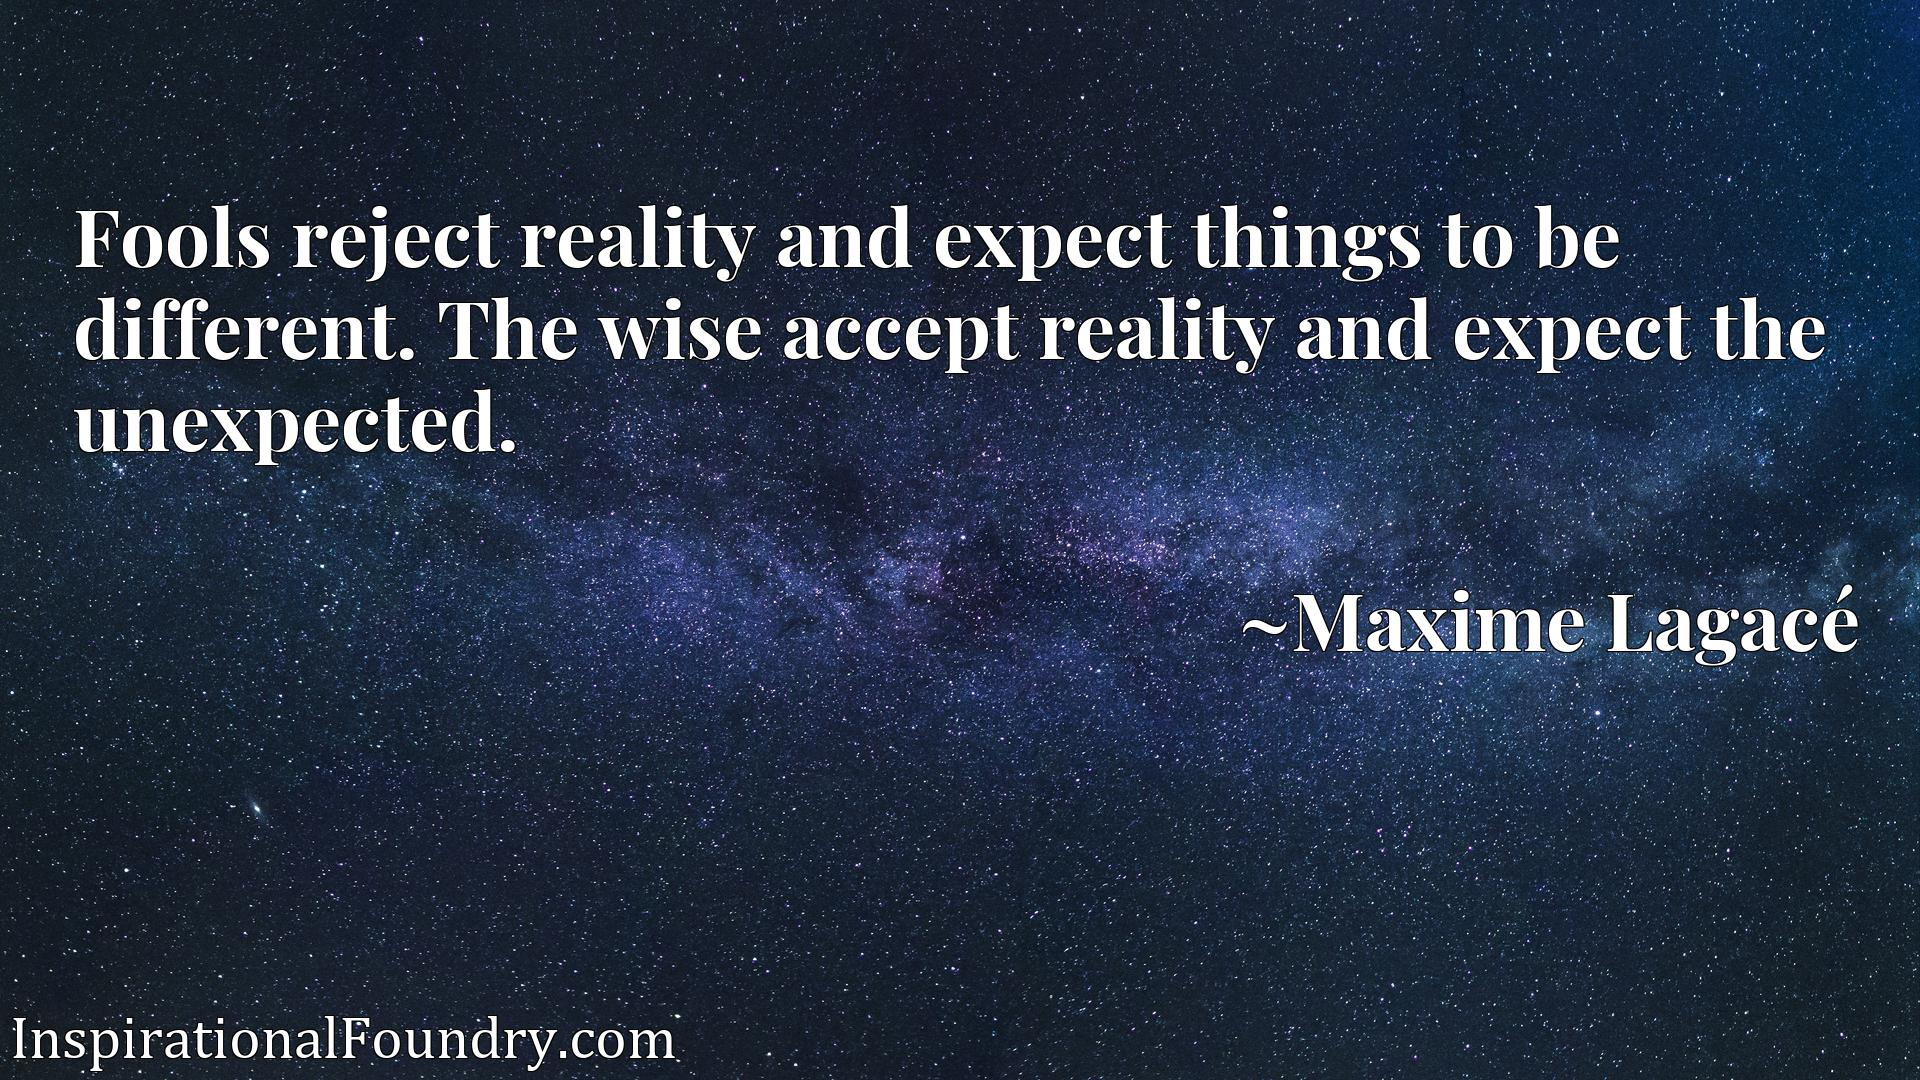 Fools reject reality and expect things to be different. The wise accept reality and expect the unexpected.